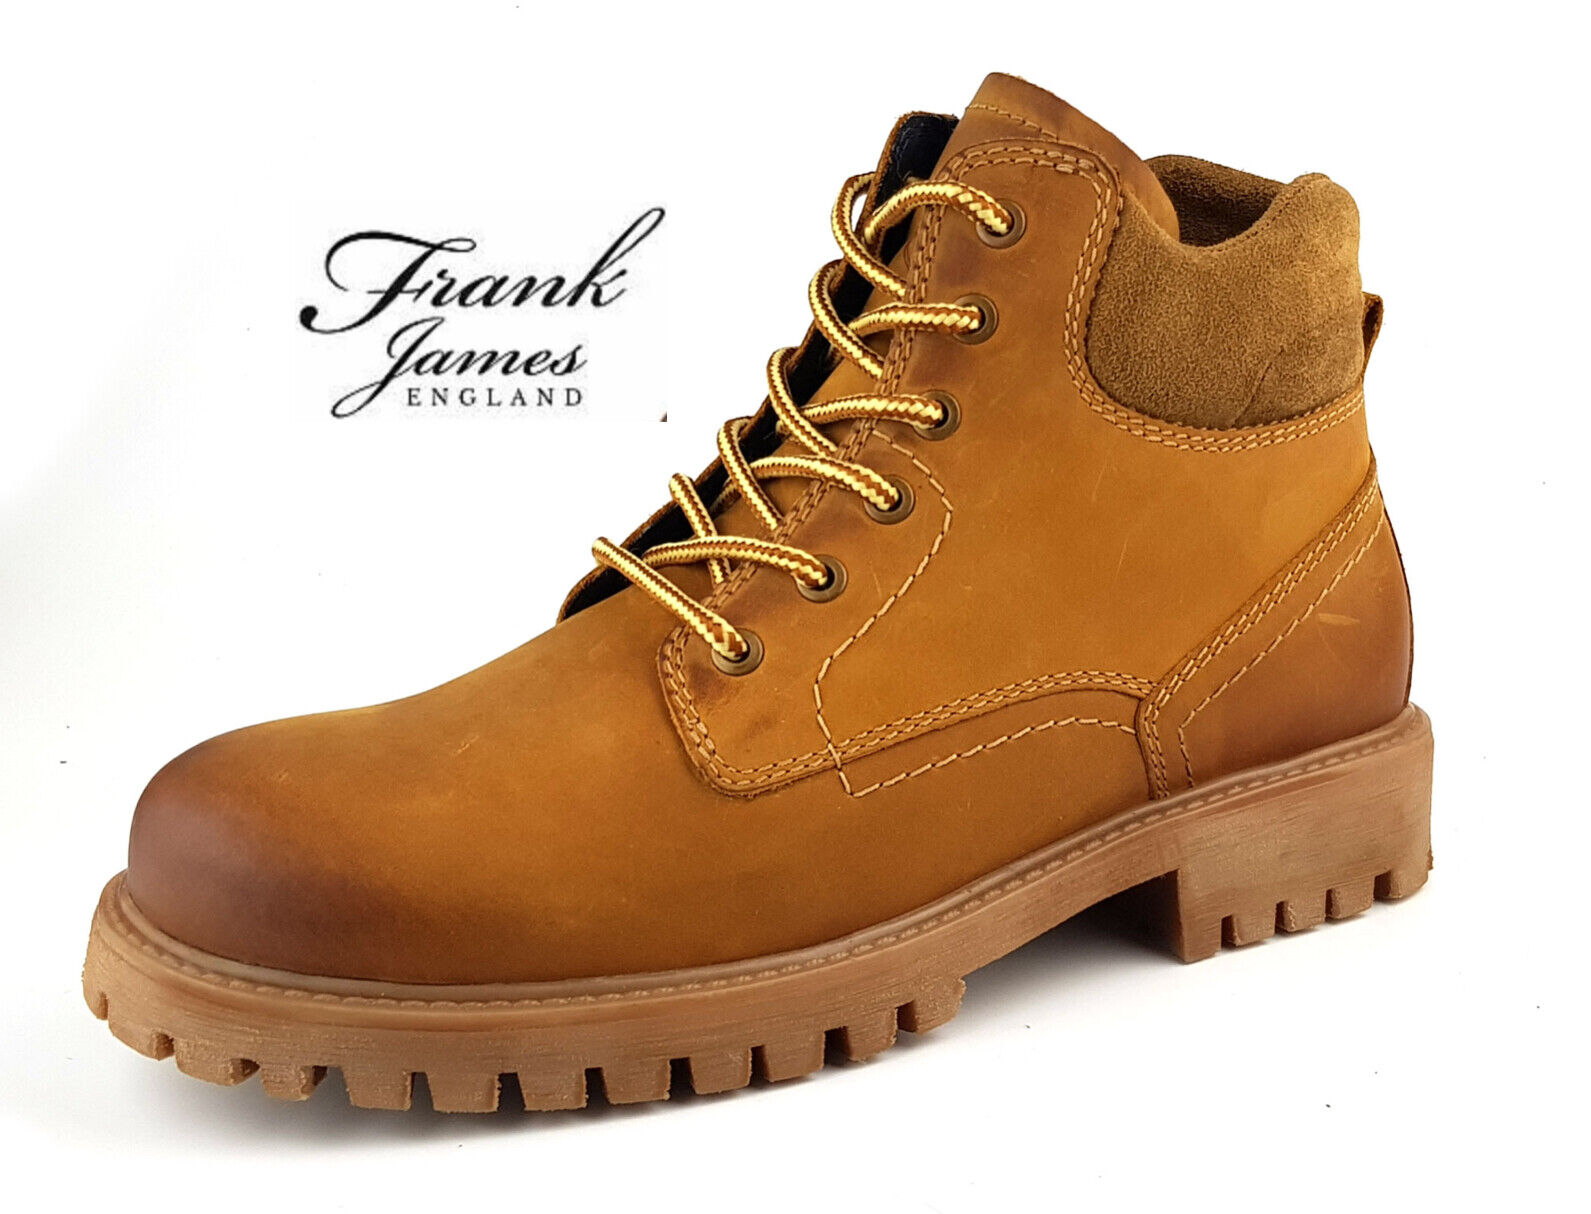 Mens 100% Leather Casual Outdoor Work Lace-up Boots Camel Brown - FJ Bisley 7x12